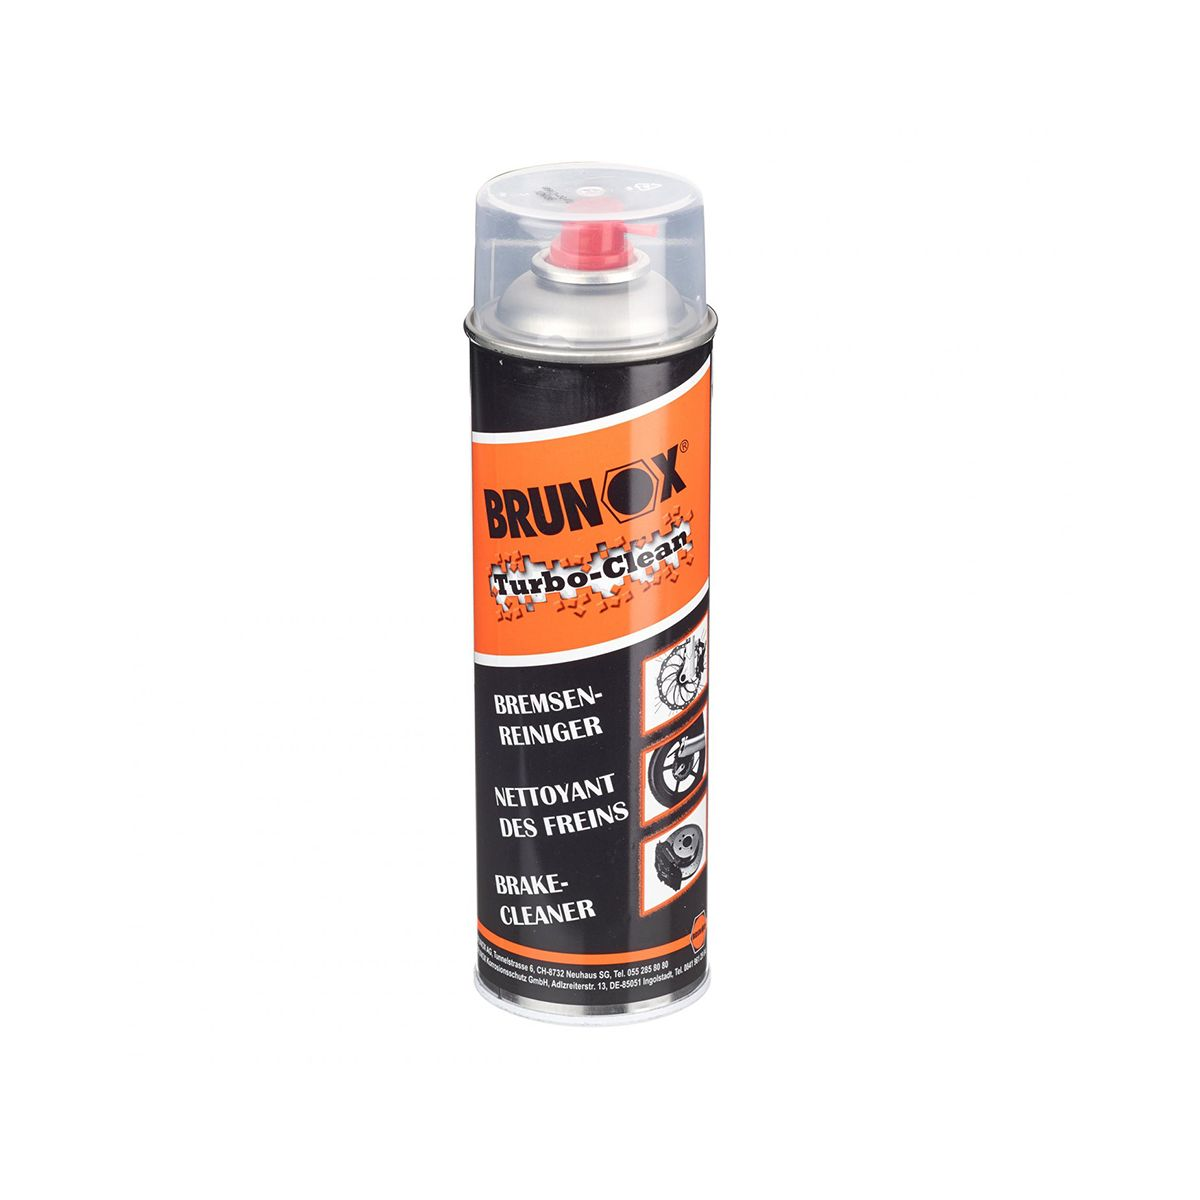 Brunox Turbo-Clean brake cleaner | Brake Cleaner